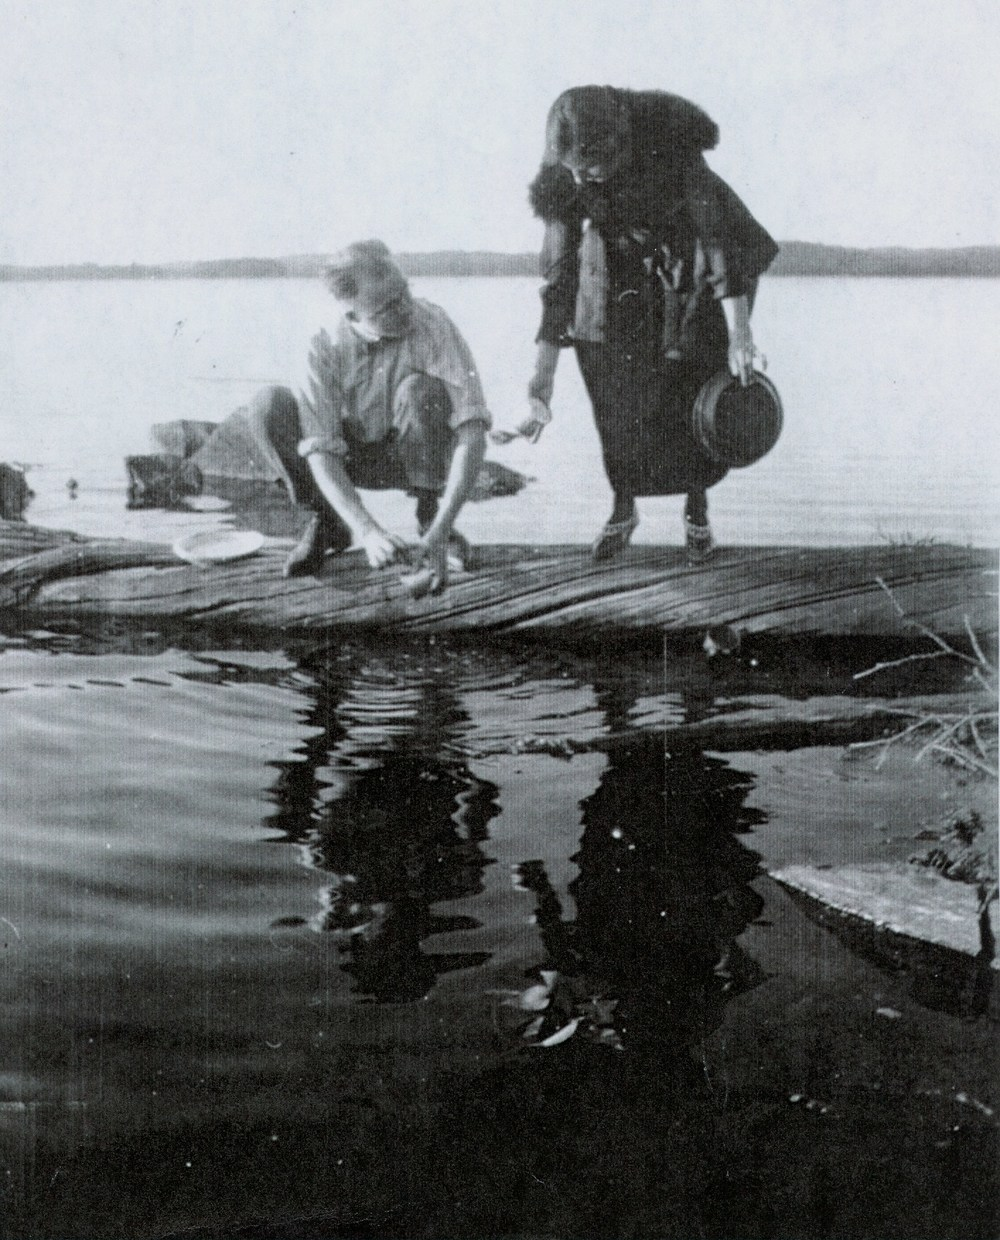 vIOLET dEACON  AND BROTHER-IN-LAW,  HAROLD MUMBY AT cROWE lAKE,  C.1940